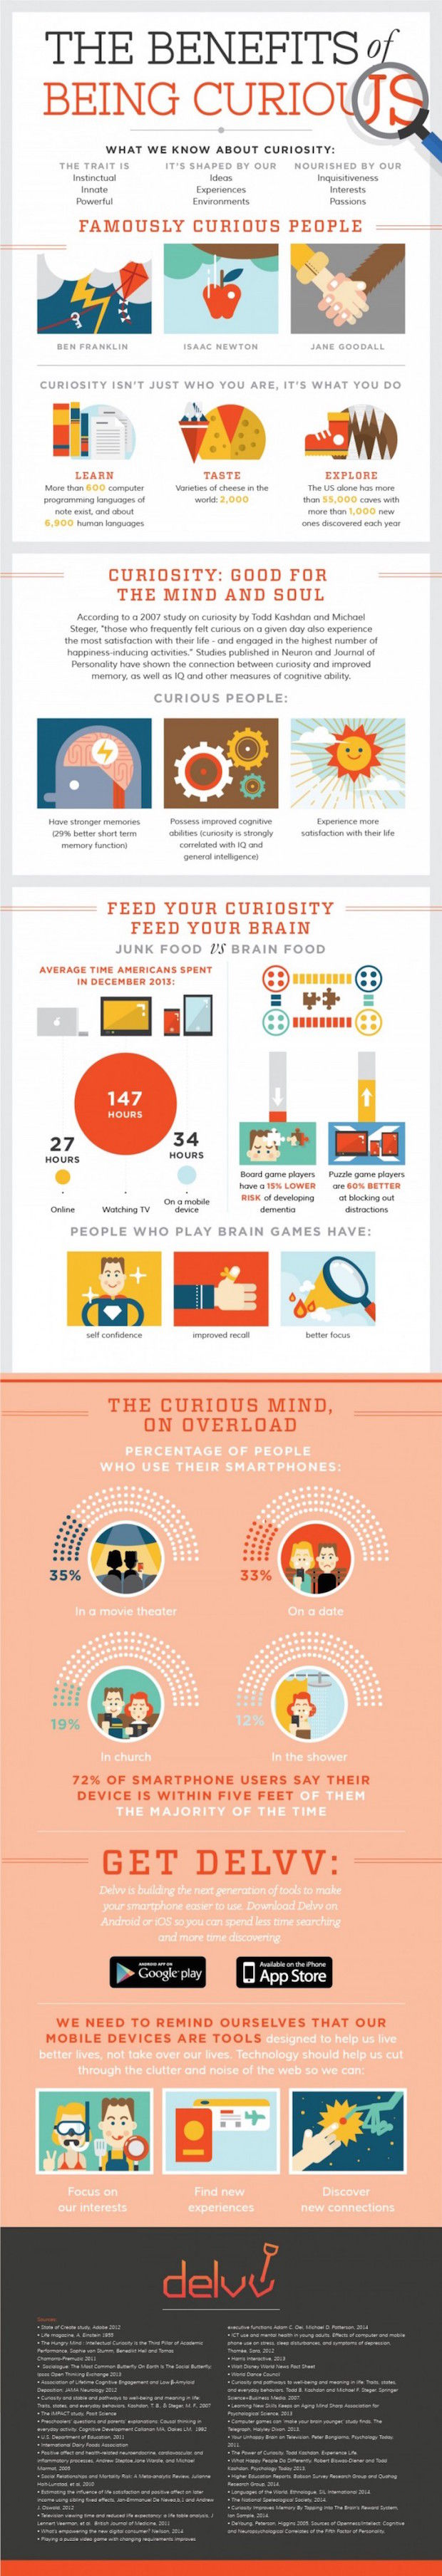 infographic_curious